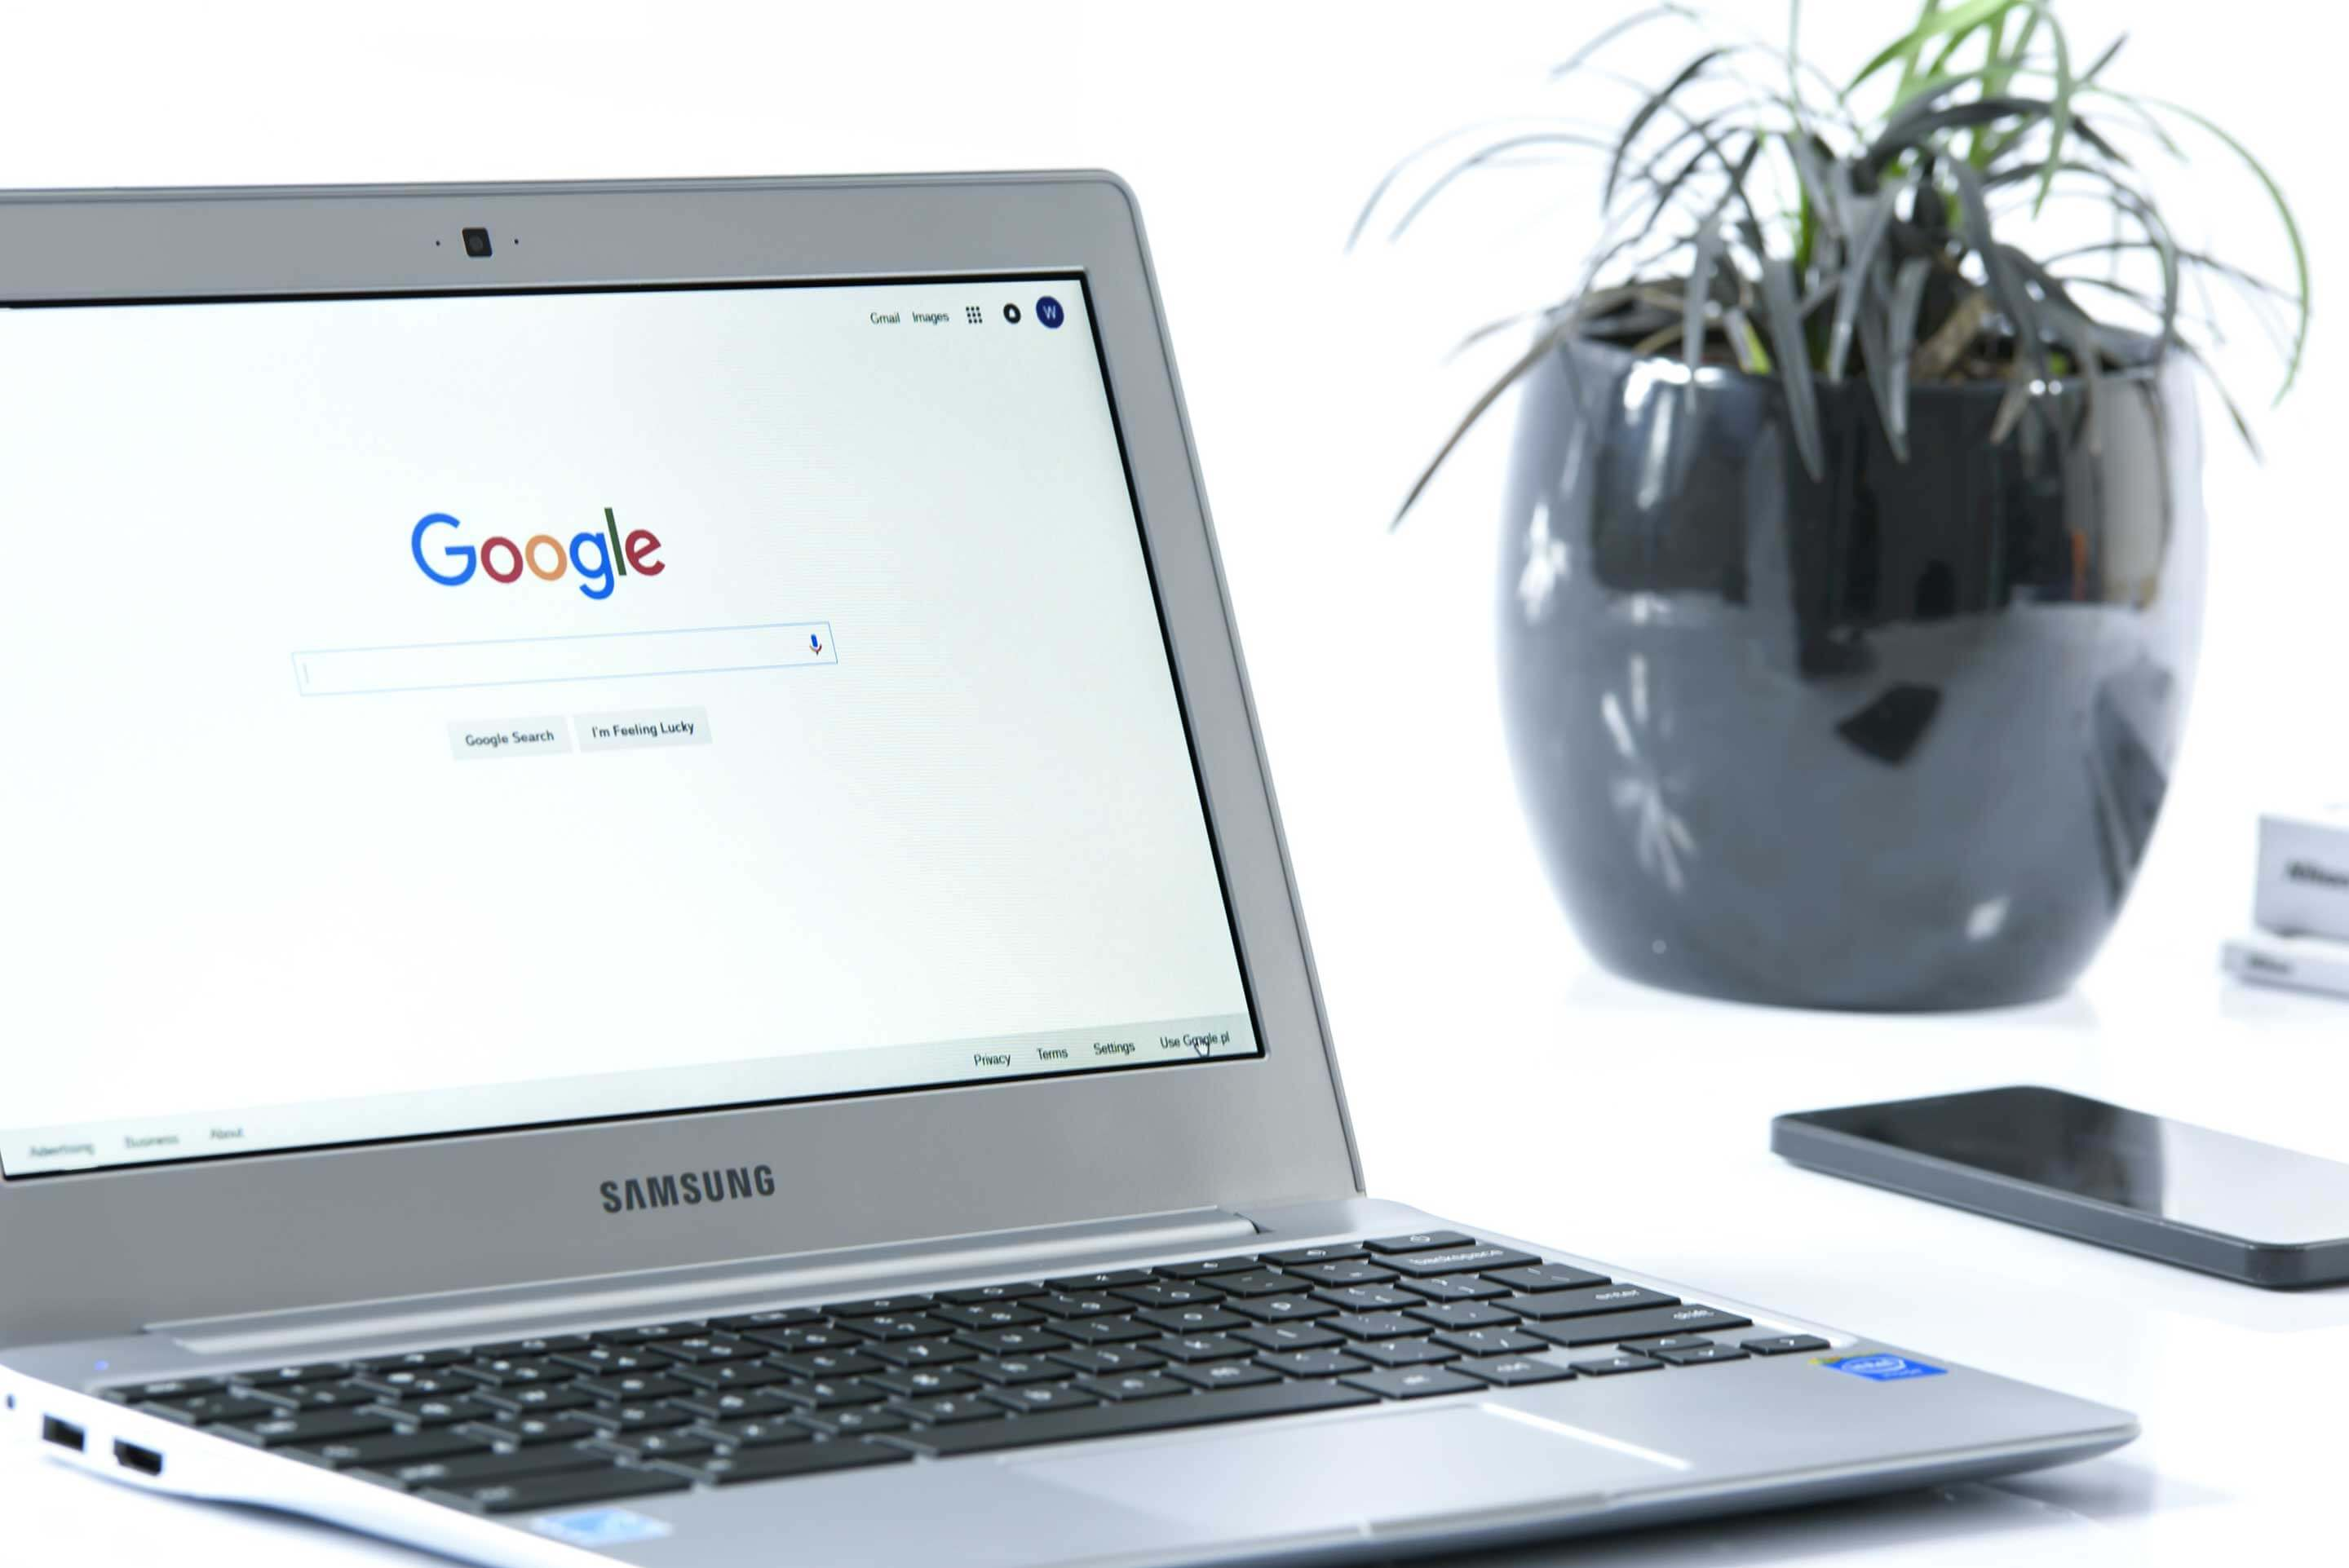 Top 17 Search Engine Optimization Techniques That Will Work in 2018